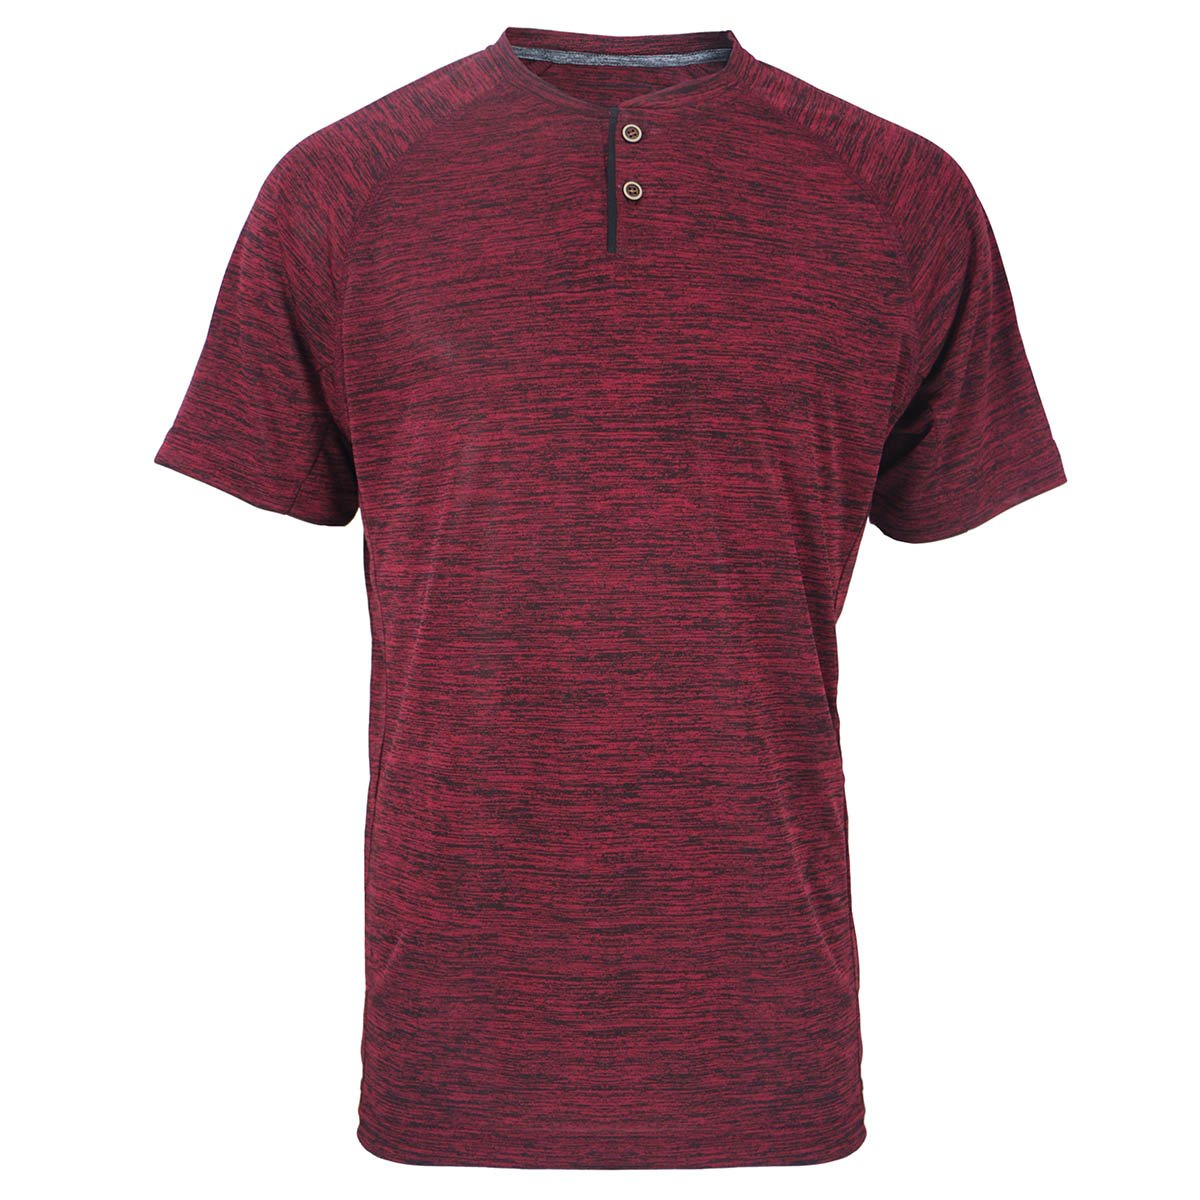 Eurogarment UPF 50+ Short Sleeve Performance T Henley Shirt for Men Casual Athletic Sports Dry Fit Tee with 2 Buttons